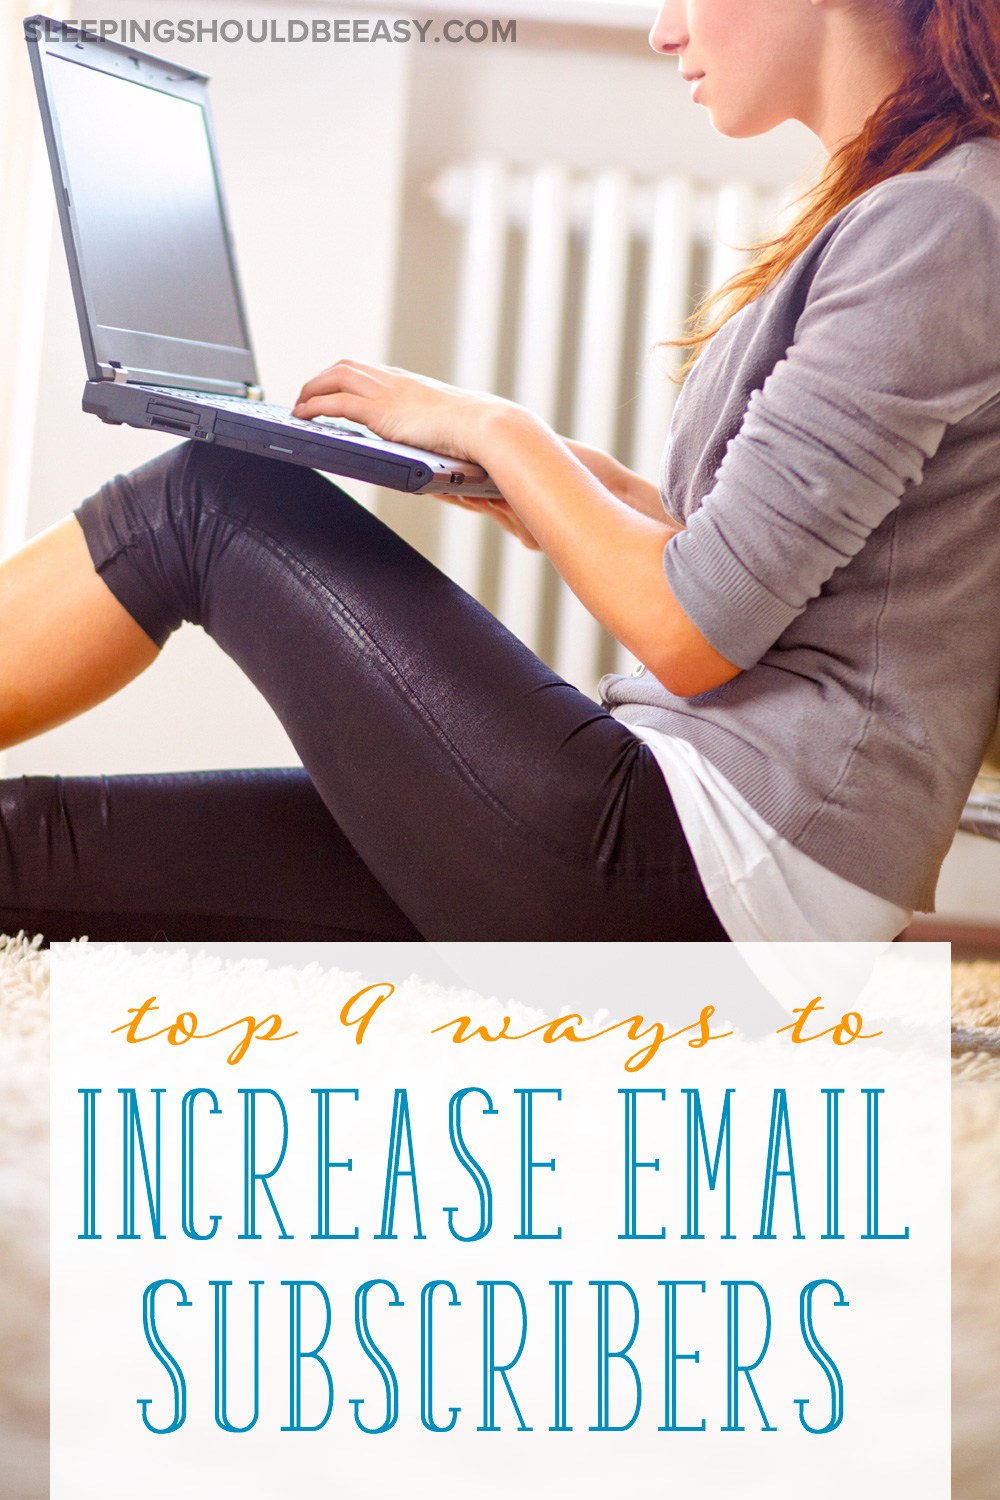 Building and growing an email list is important for any blog. Here are the top 9 ways I increase email subscribers.